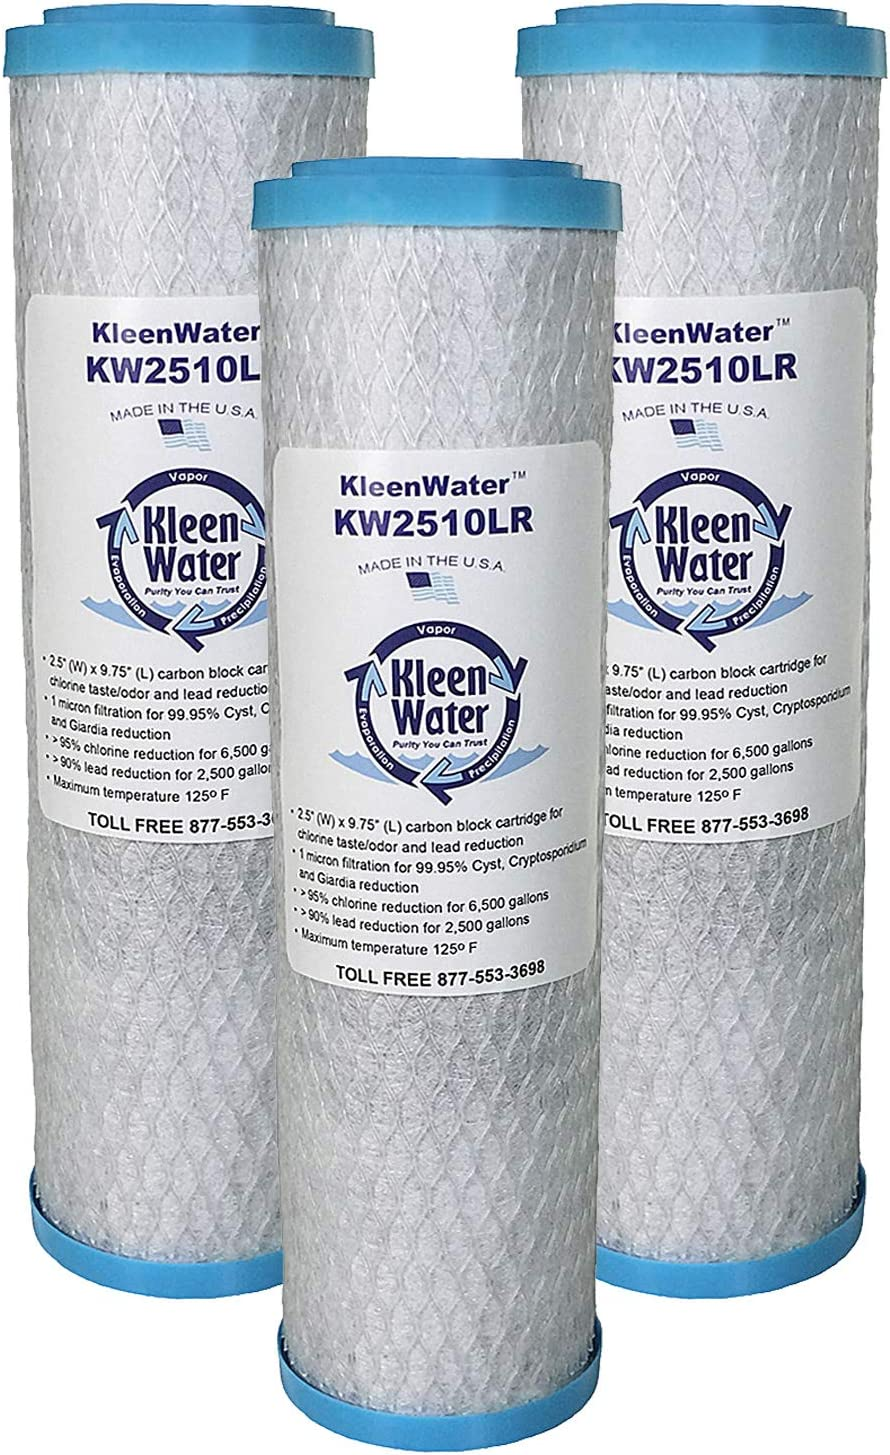 KleenWater KW2510LR Replacement Water Filters, Compatible with Whirlpool WHKF-DB2 & WHKF-DB1, Pack of 3